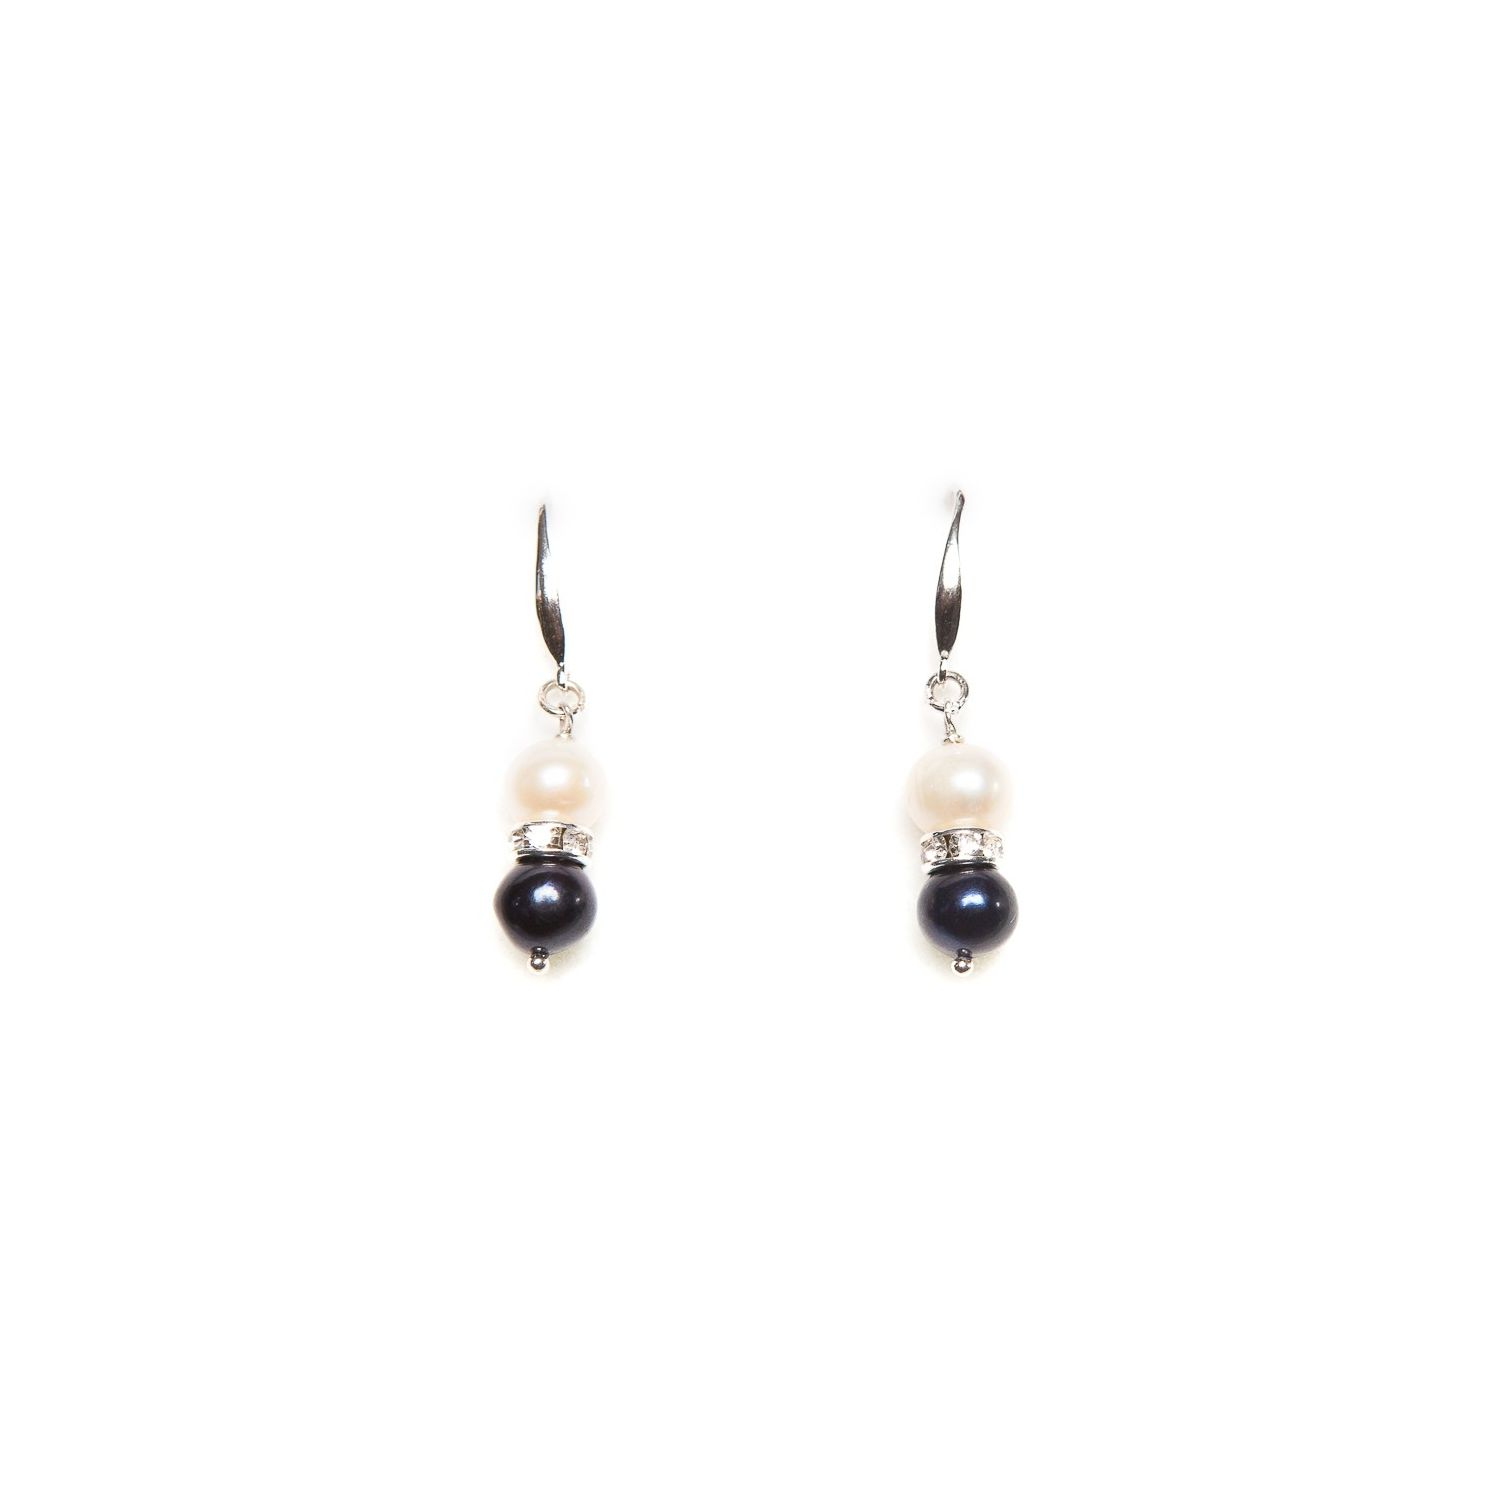 Black and white pearl silver earrings